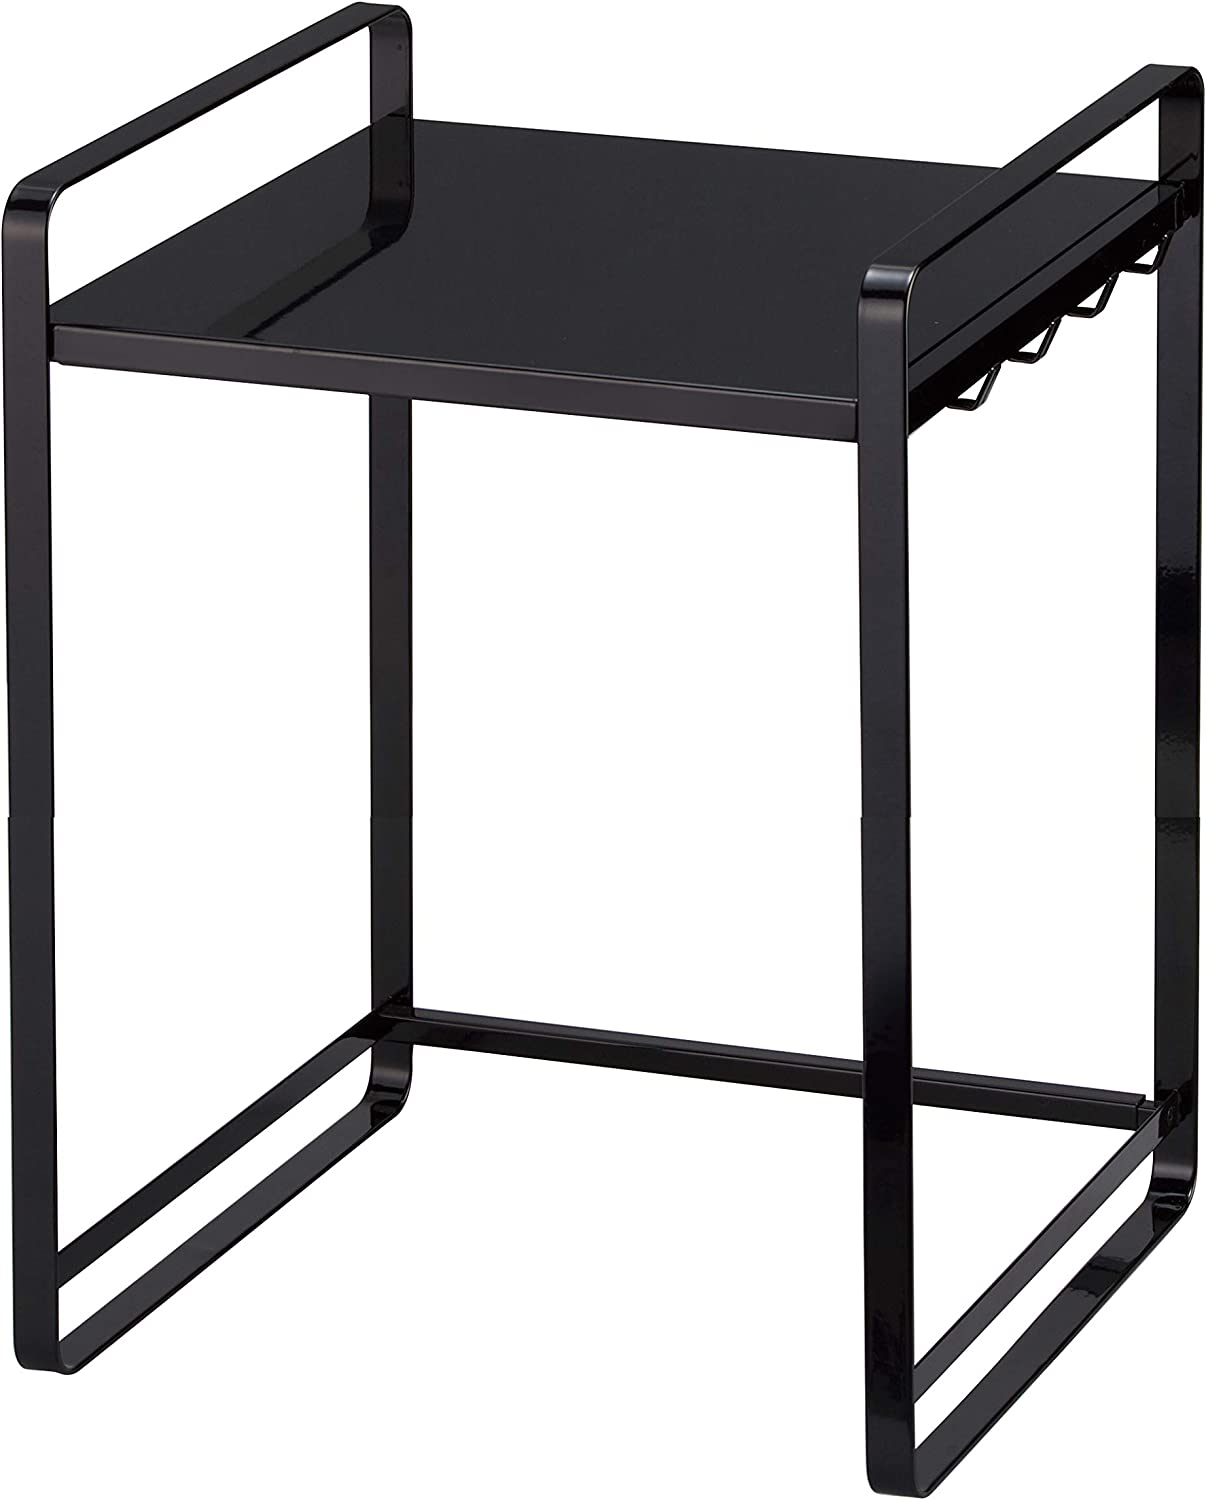 YAMAZAKI home Tower Expandable Kitchen Counter Organizer – Durable Storage Table Shelf, Black